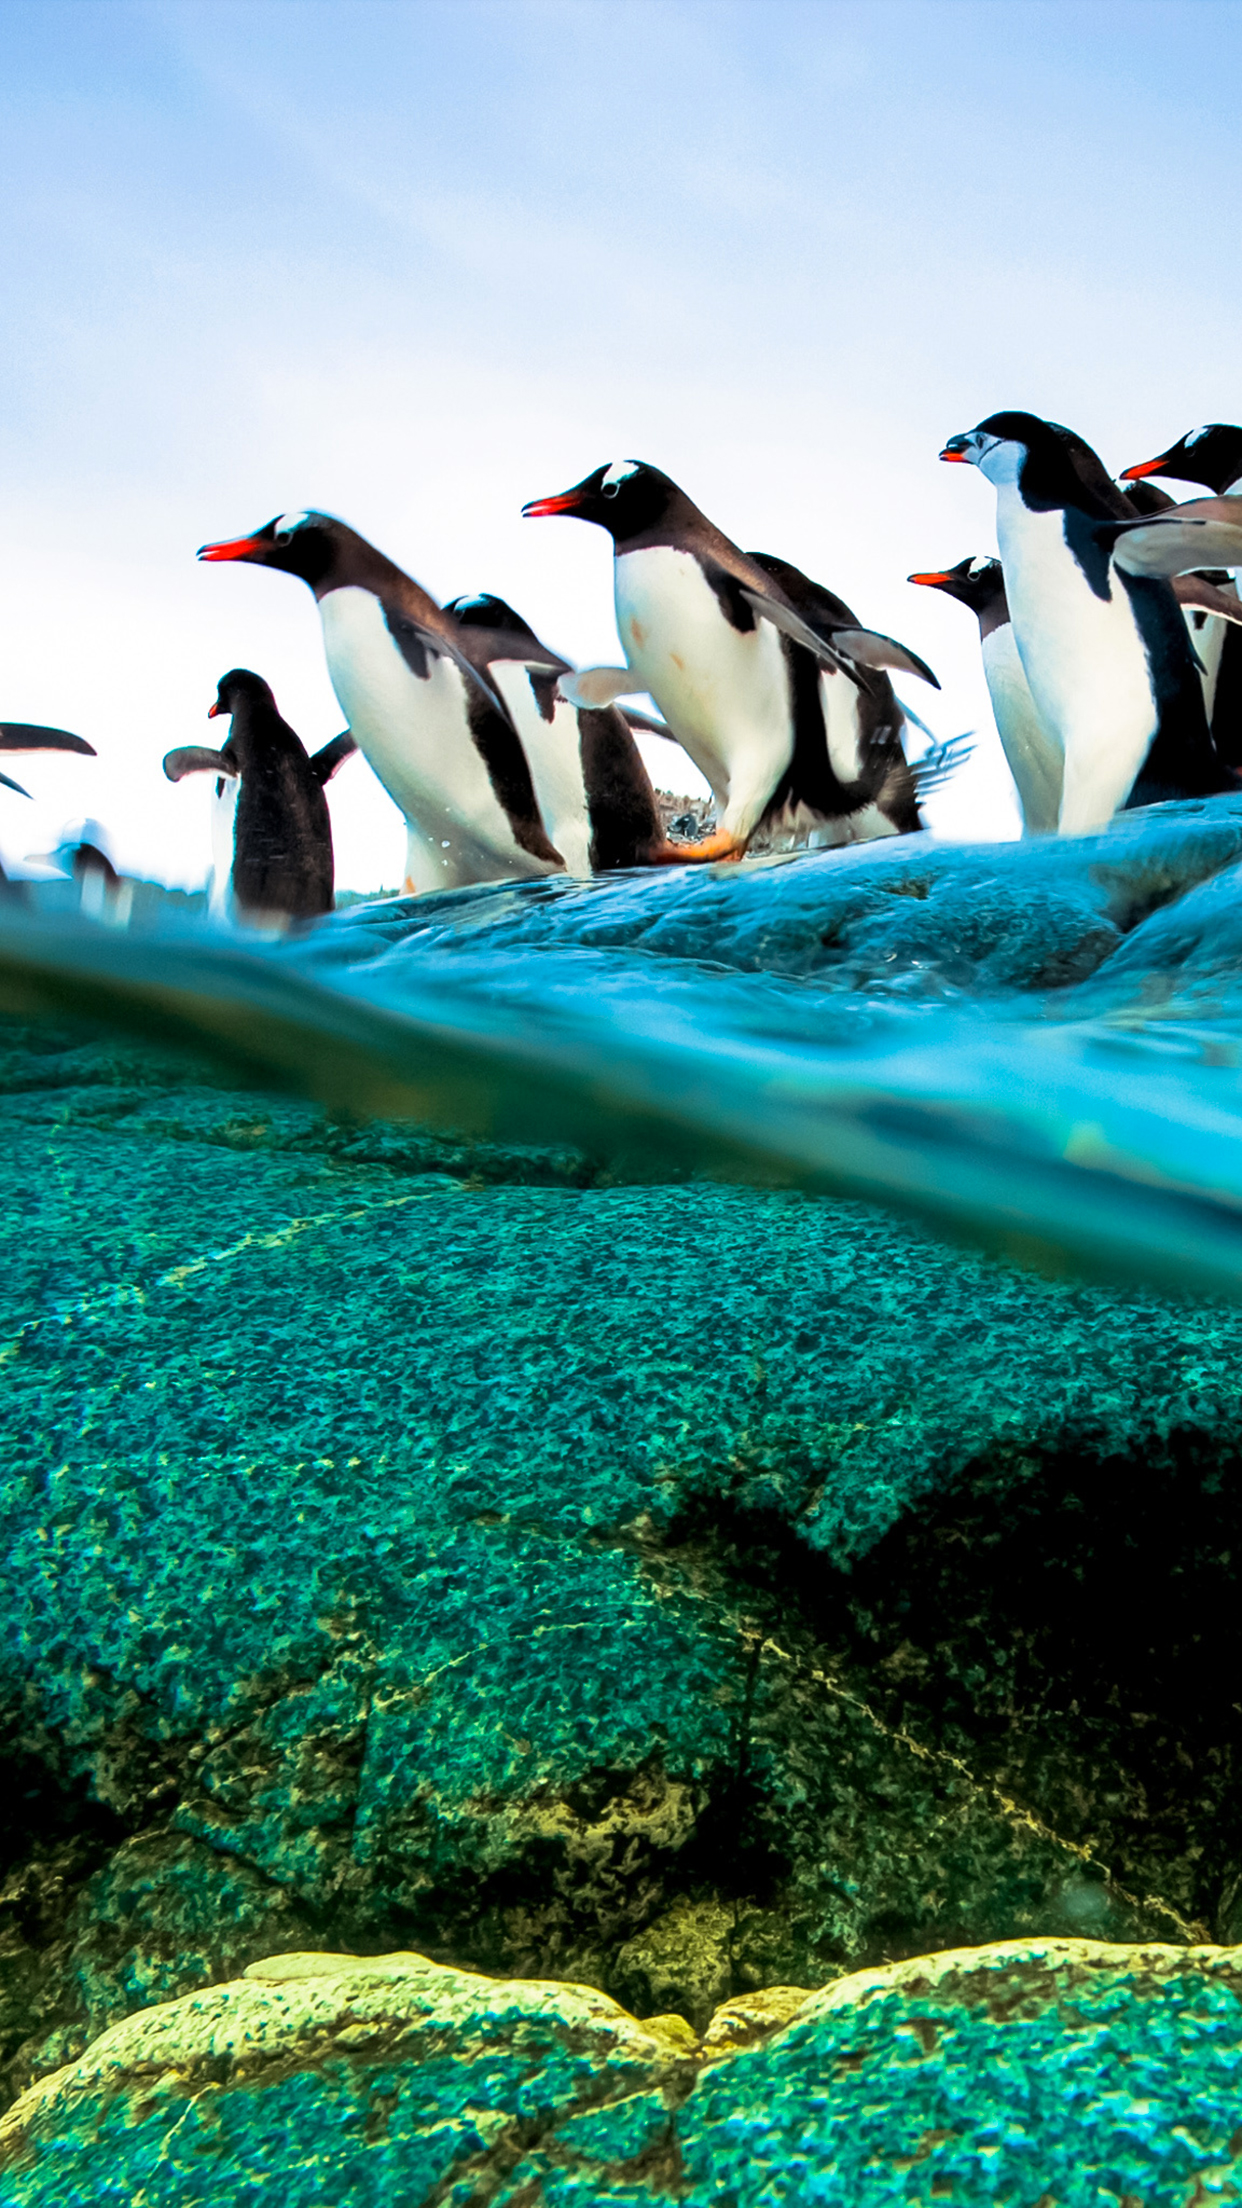 Diving Penguins 3Wallpapers iPhone Parallax Diving Penguins